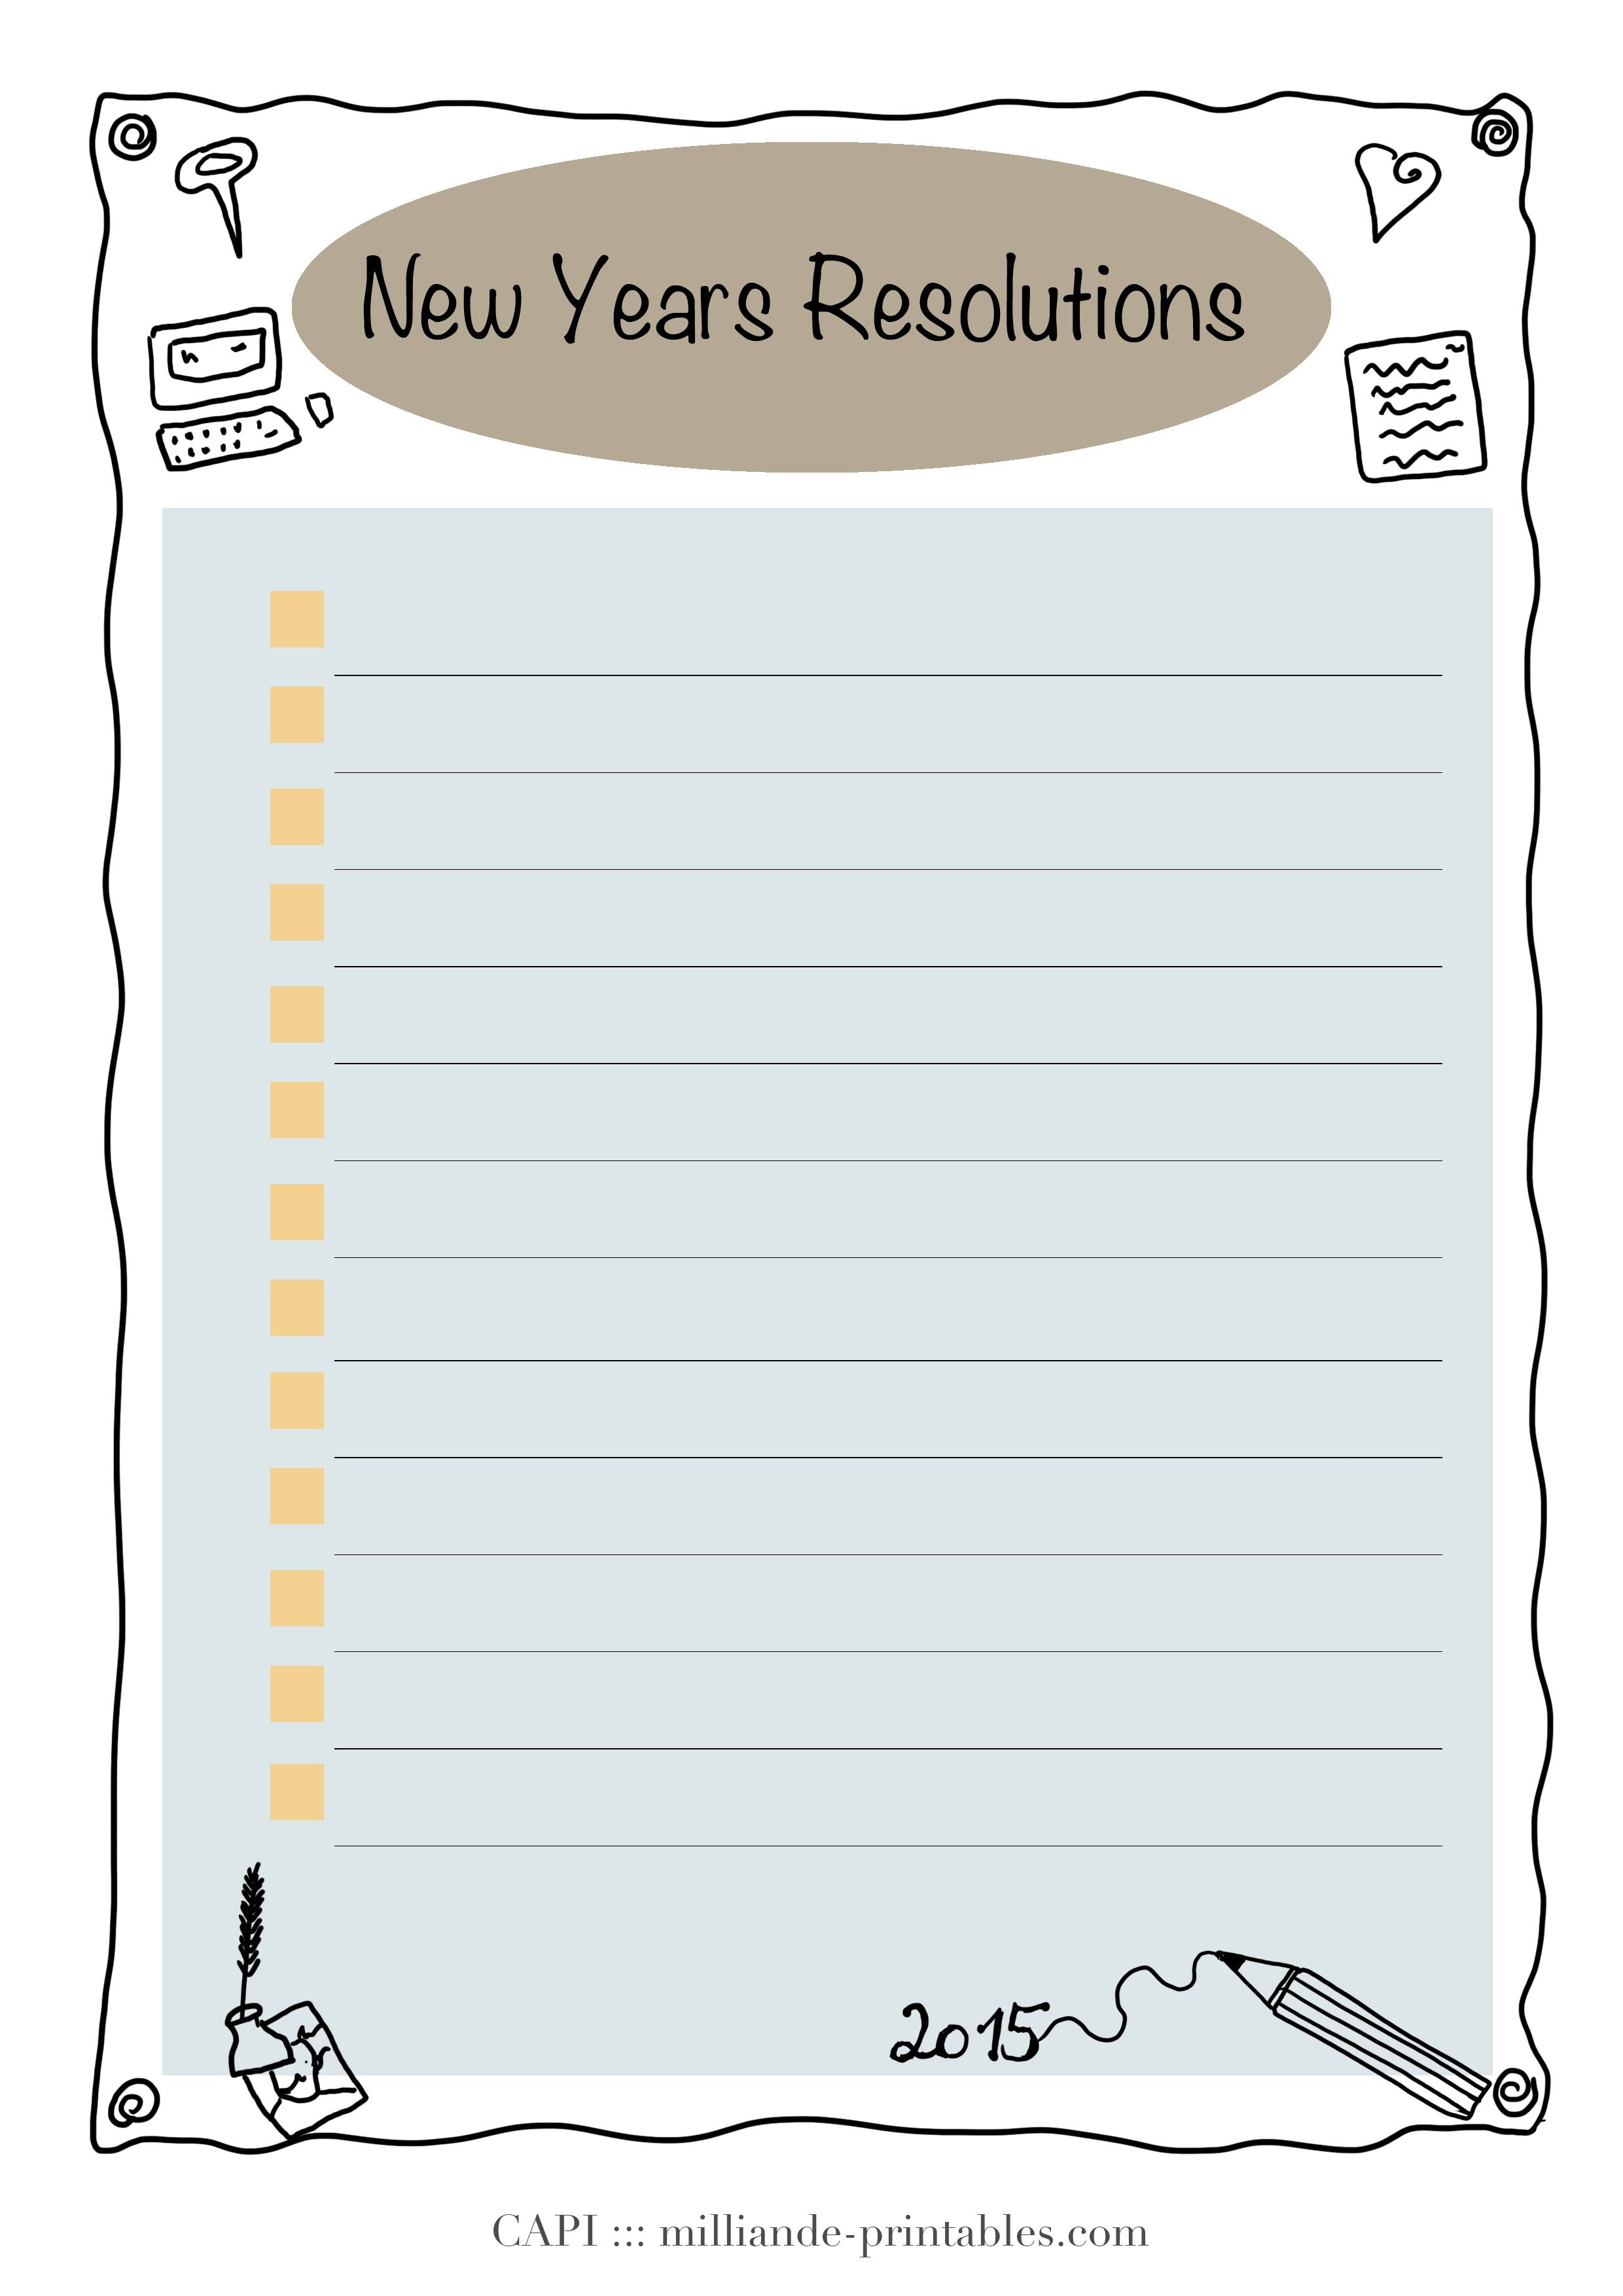 a simple tick list new year resolution card printable for adding to your art journals day planner templates or simply to pin up at the wall